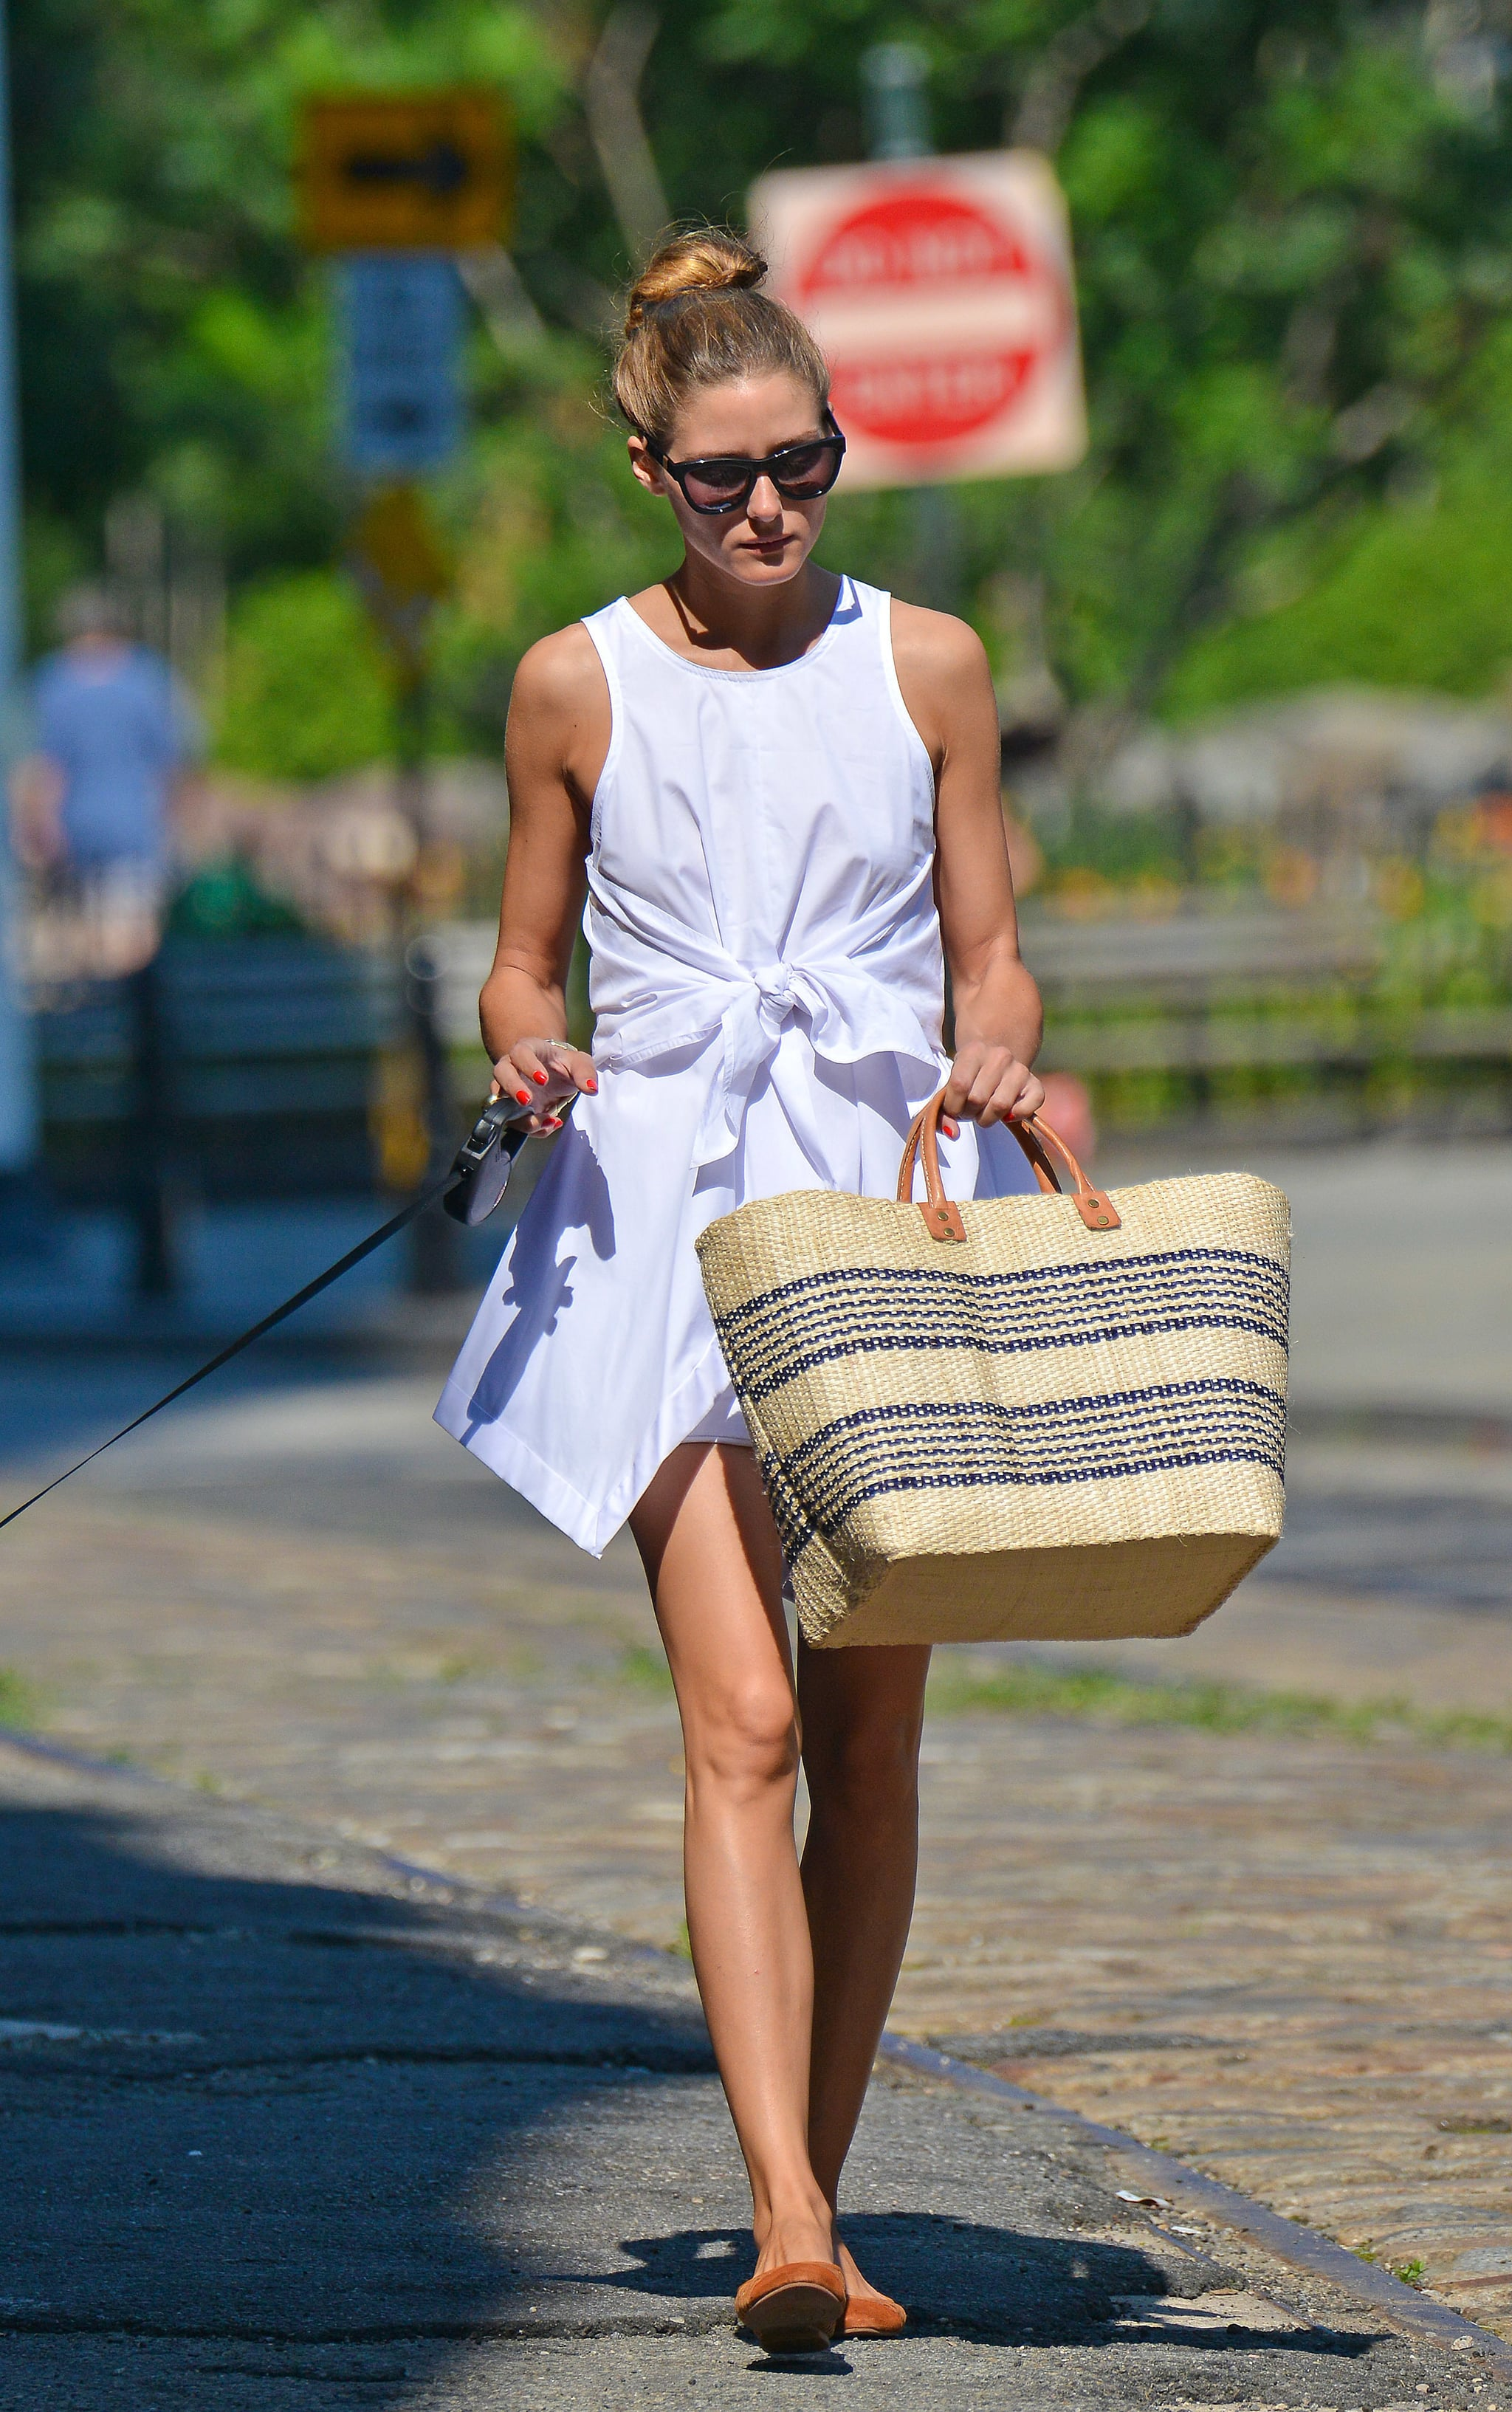 By day, Olivia accessorized her LWD with a straw tote and flats.